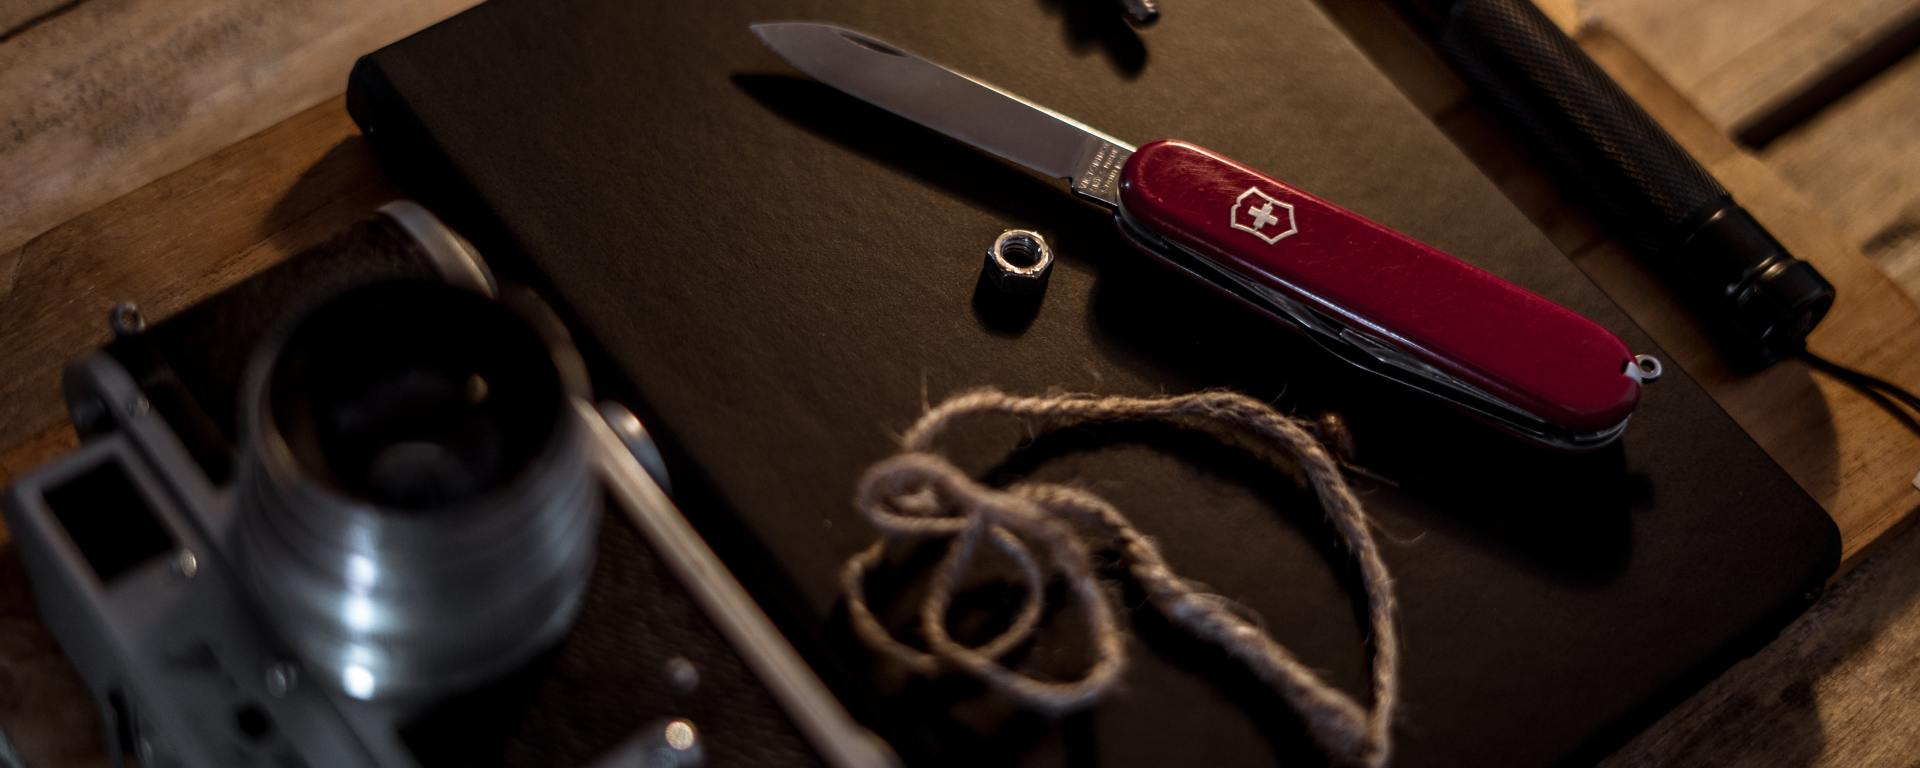 An image of a pocket knife, torch, piece of string, camera and notebook, on top of a wooden surface.